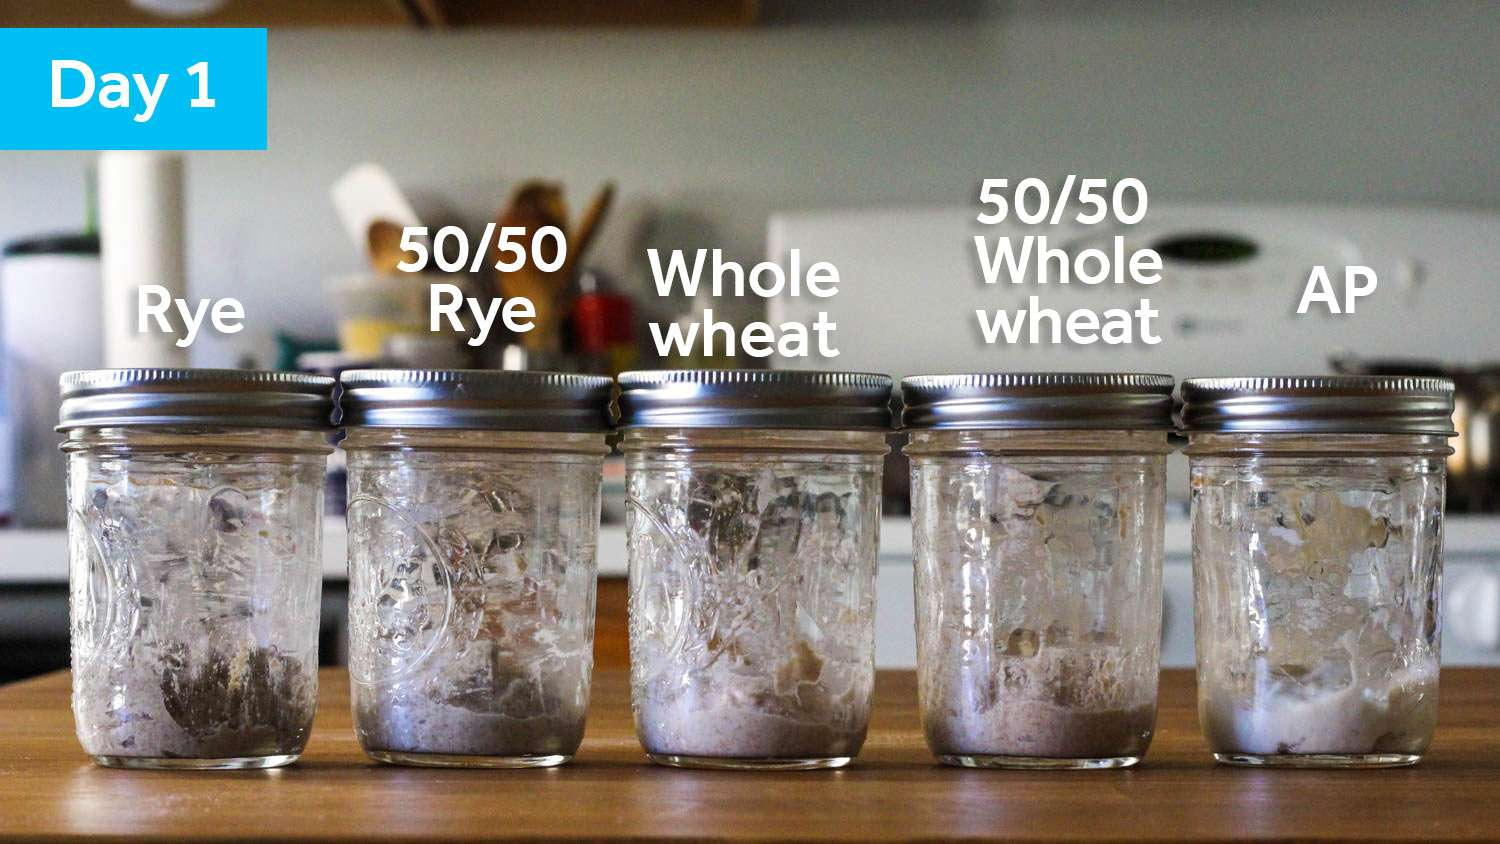 Five sourdough starter samples on day 1, each in its own jar